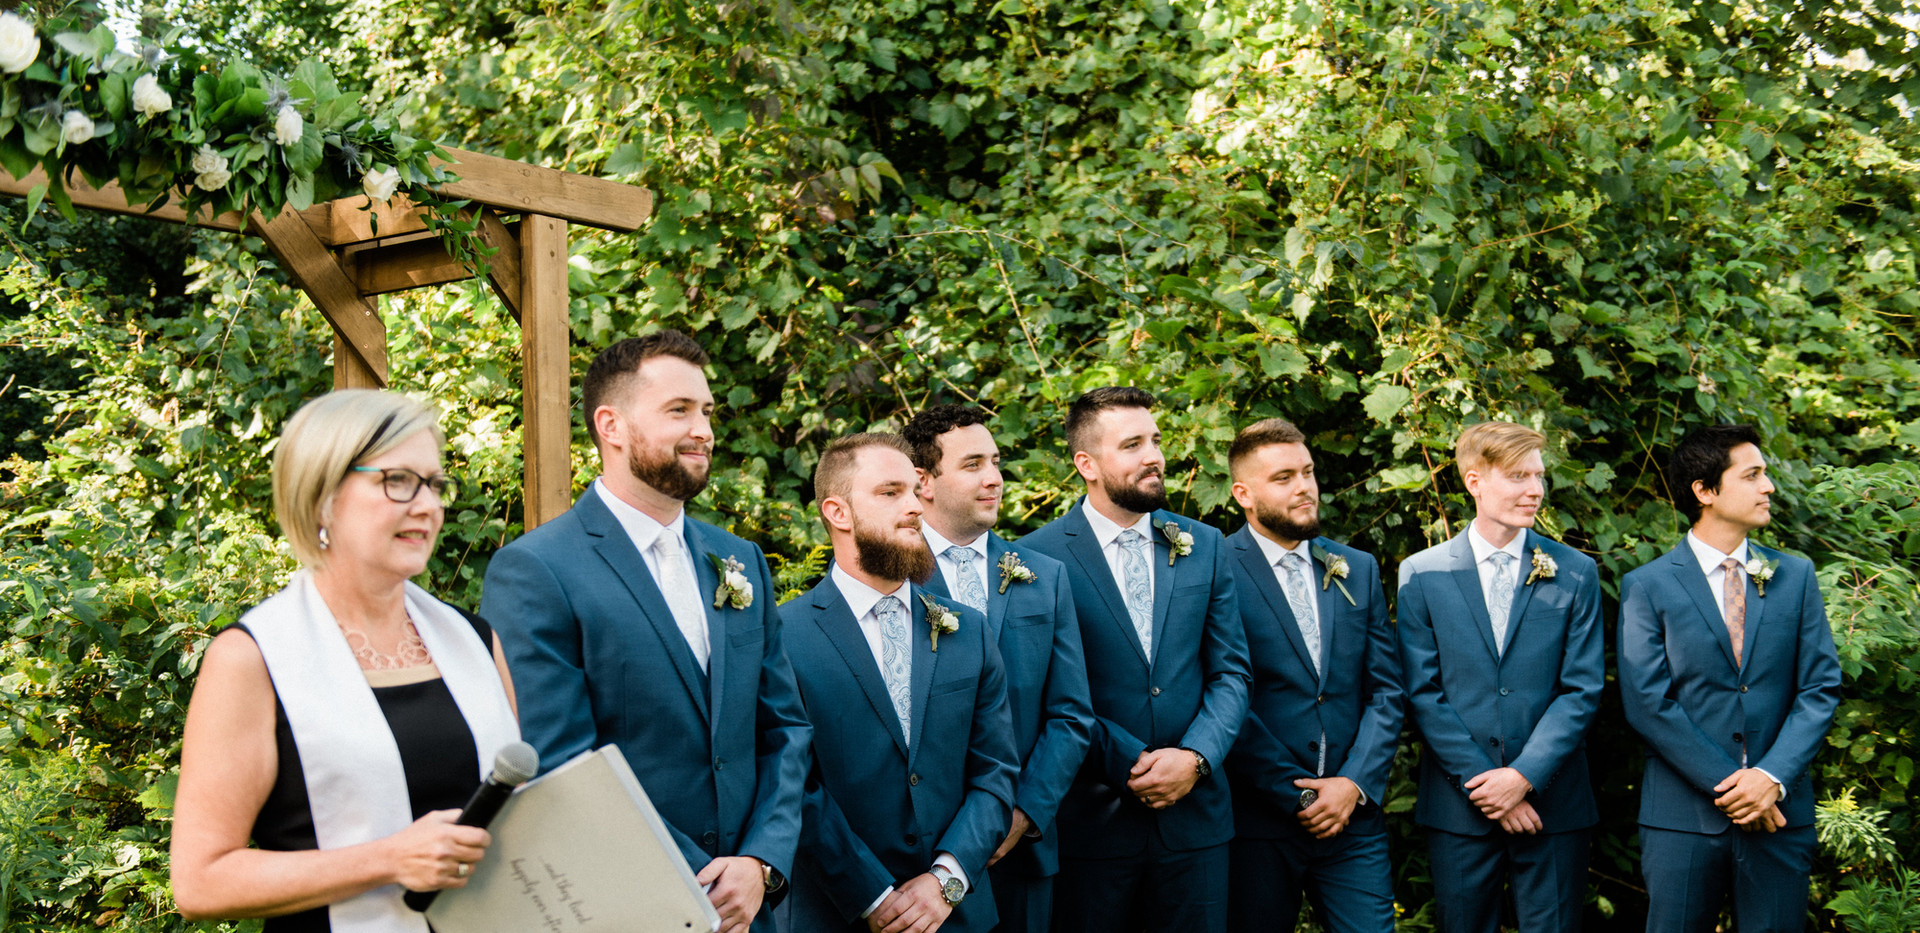 officiant standing at outdoor forest ceremony with groom and groomsmen lined up waiting for bride to come down aisle